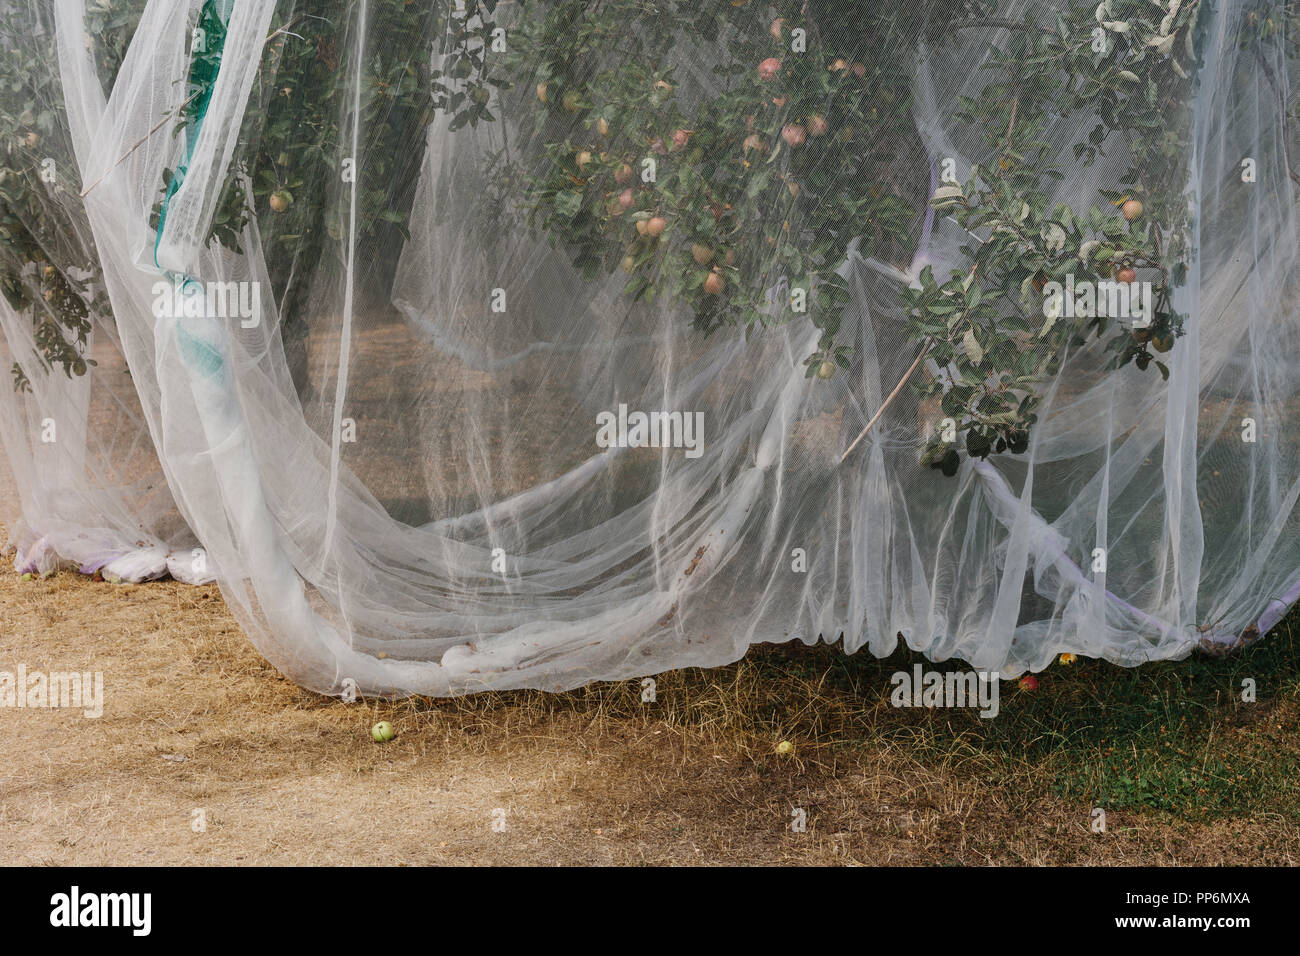 Protective mesh fabric covering apple trees bearing young fruit in summer in a commercial orchard. Pesticide-free farming and food production. - Stock Image